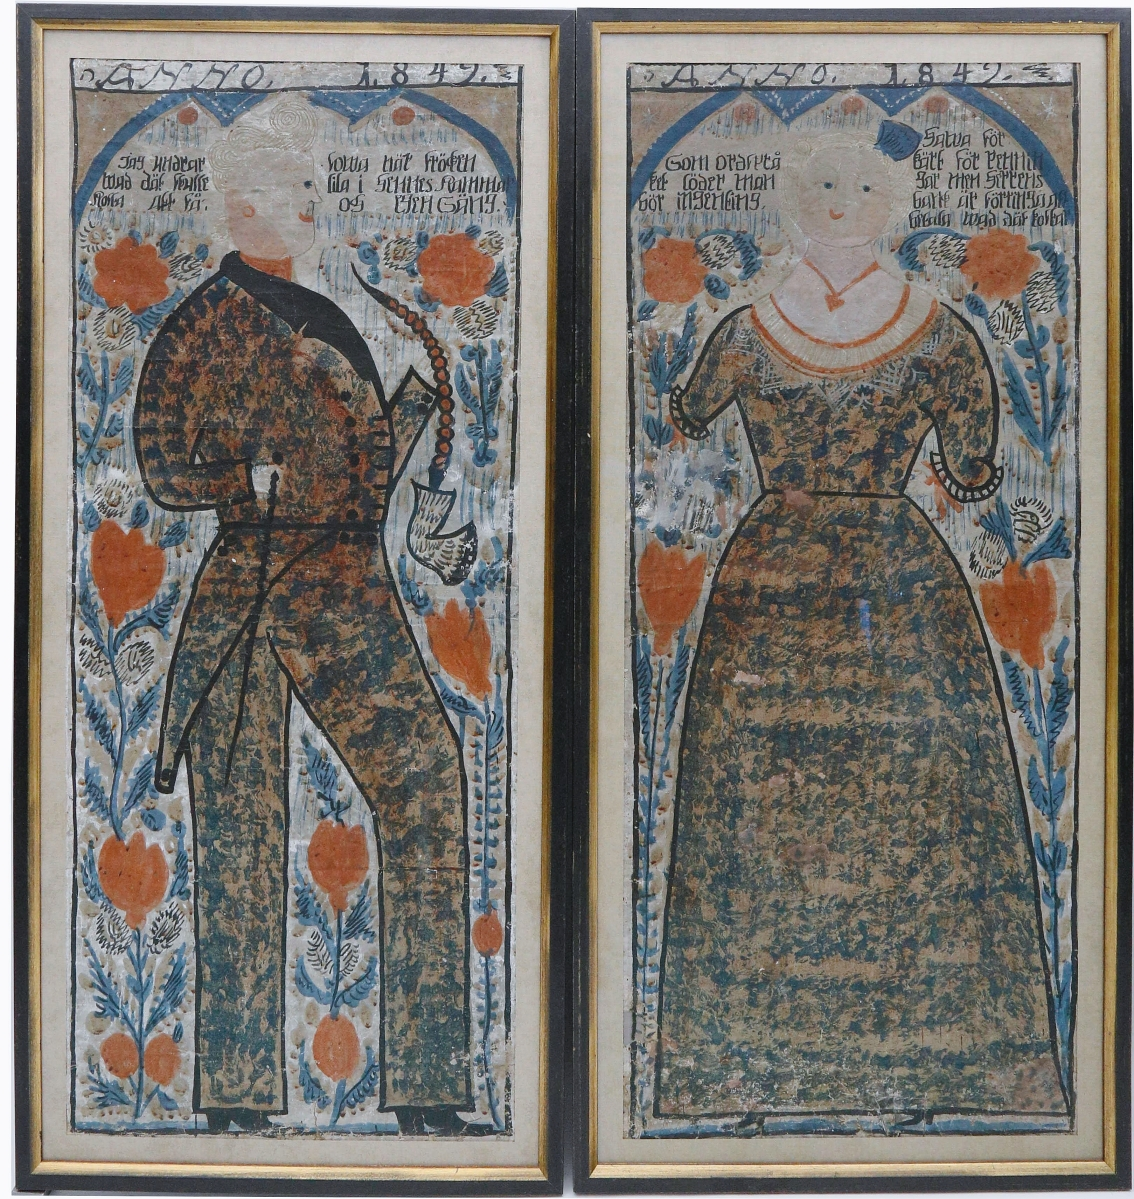 Bringing the most of ten lots of colorful Swedish folk art bonads was this lot of two tempera on paper portraits of a man and woman in colorful period clothing, dated 1849. It sold to an online buyer for $17,780 ($ ,000).